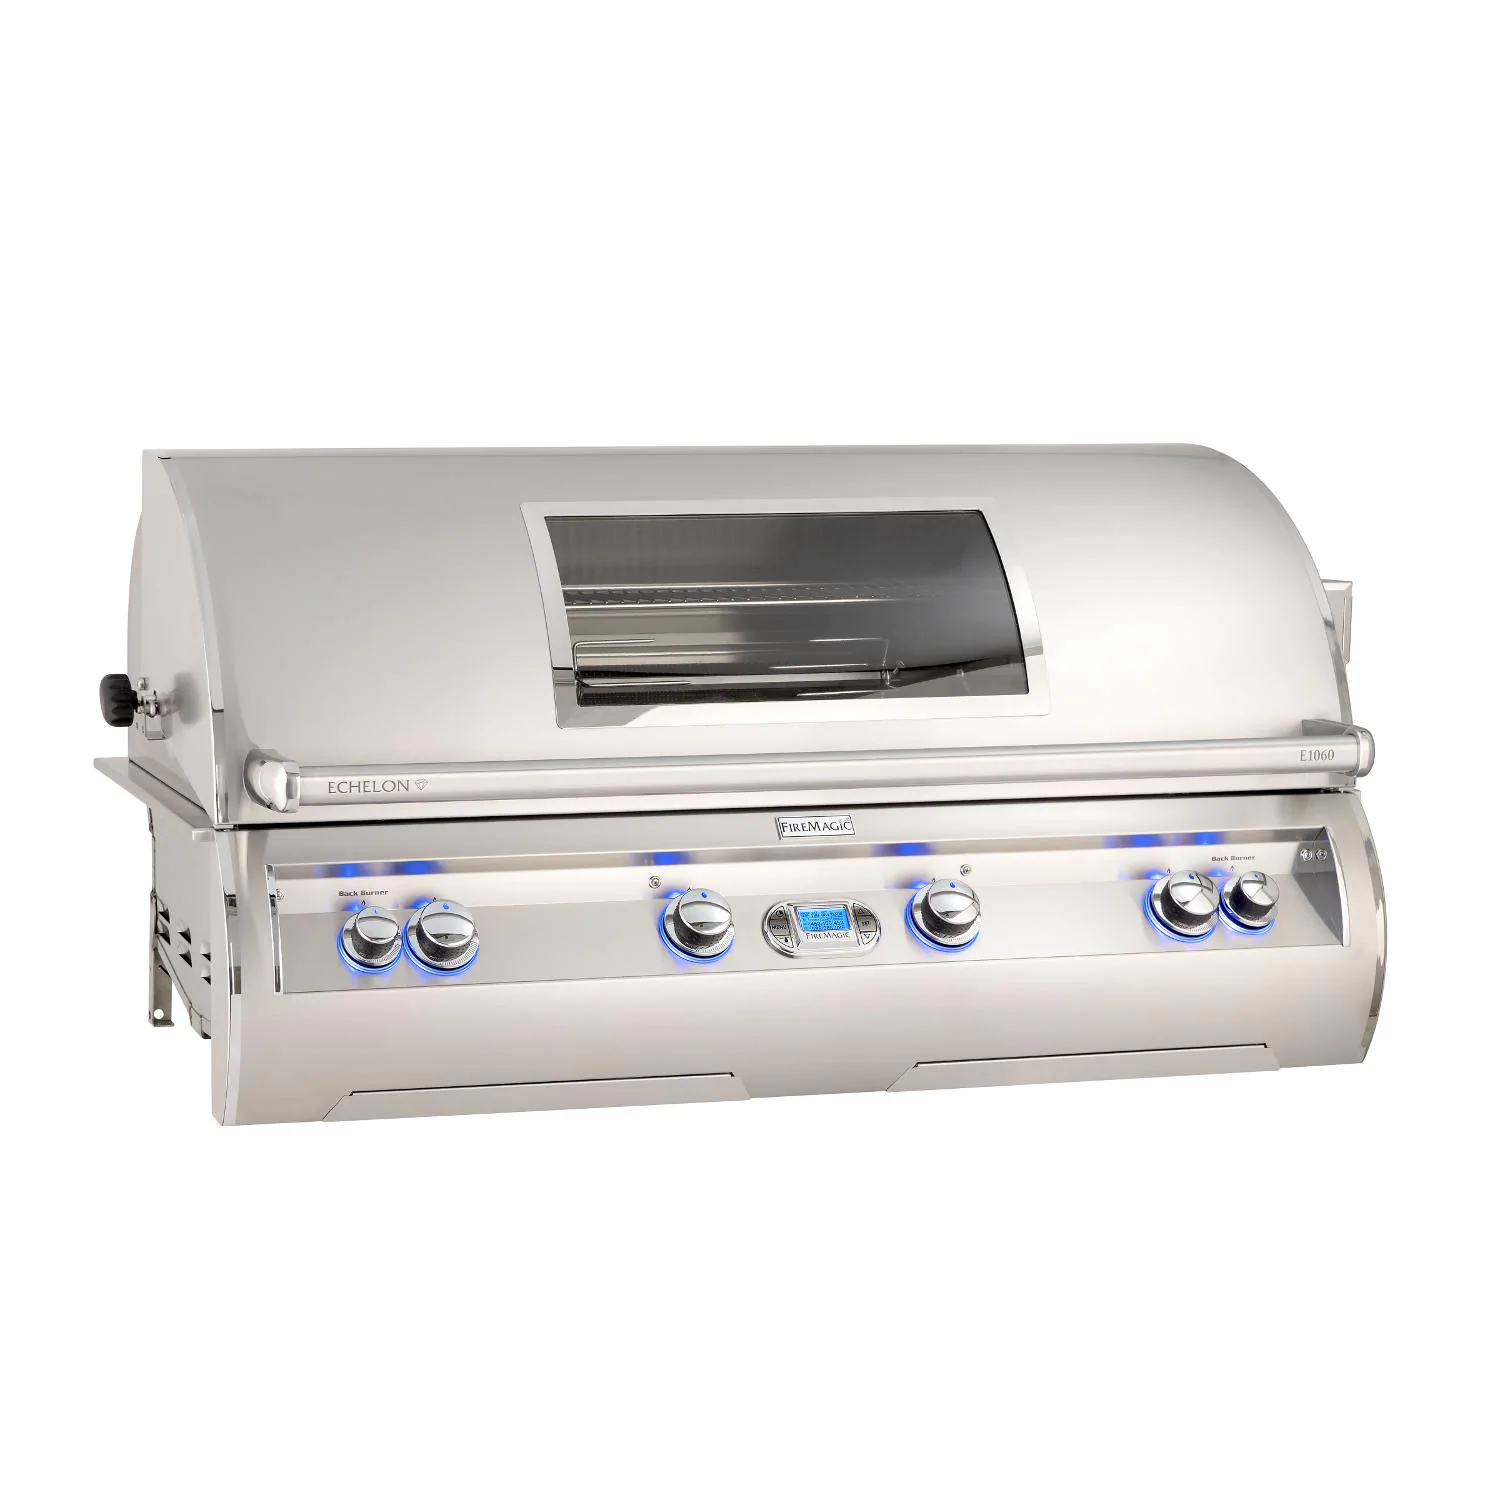 """Fire Magic E1060I-8L1N-W Echelon Diamond E1060I 48"""" Built In Natural Gas Grill  With Rotisserie, One Infrared And Digital Thermometer"""